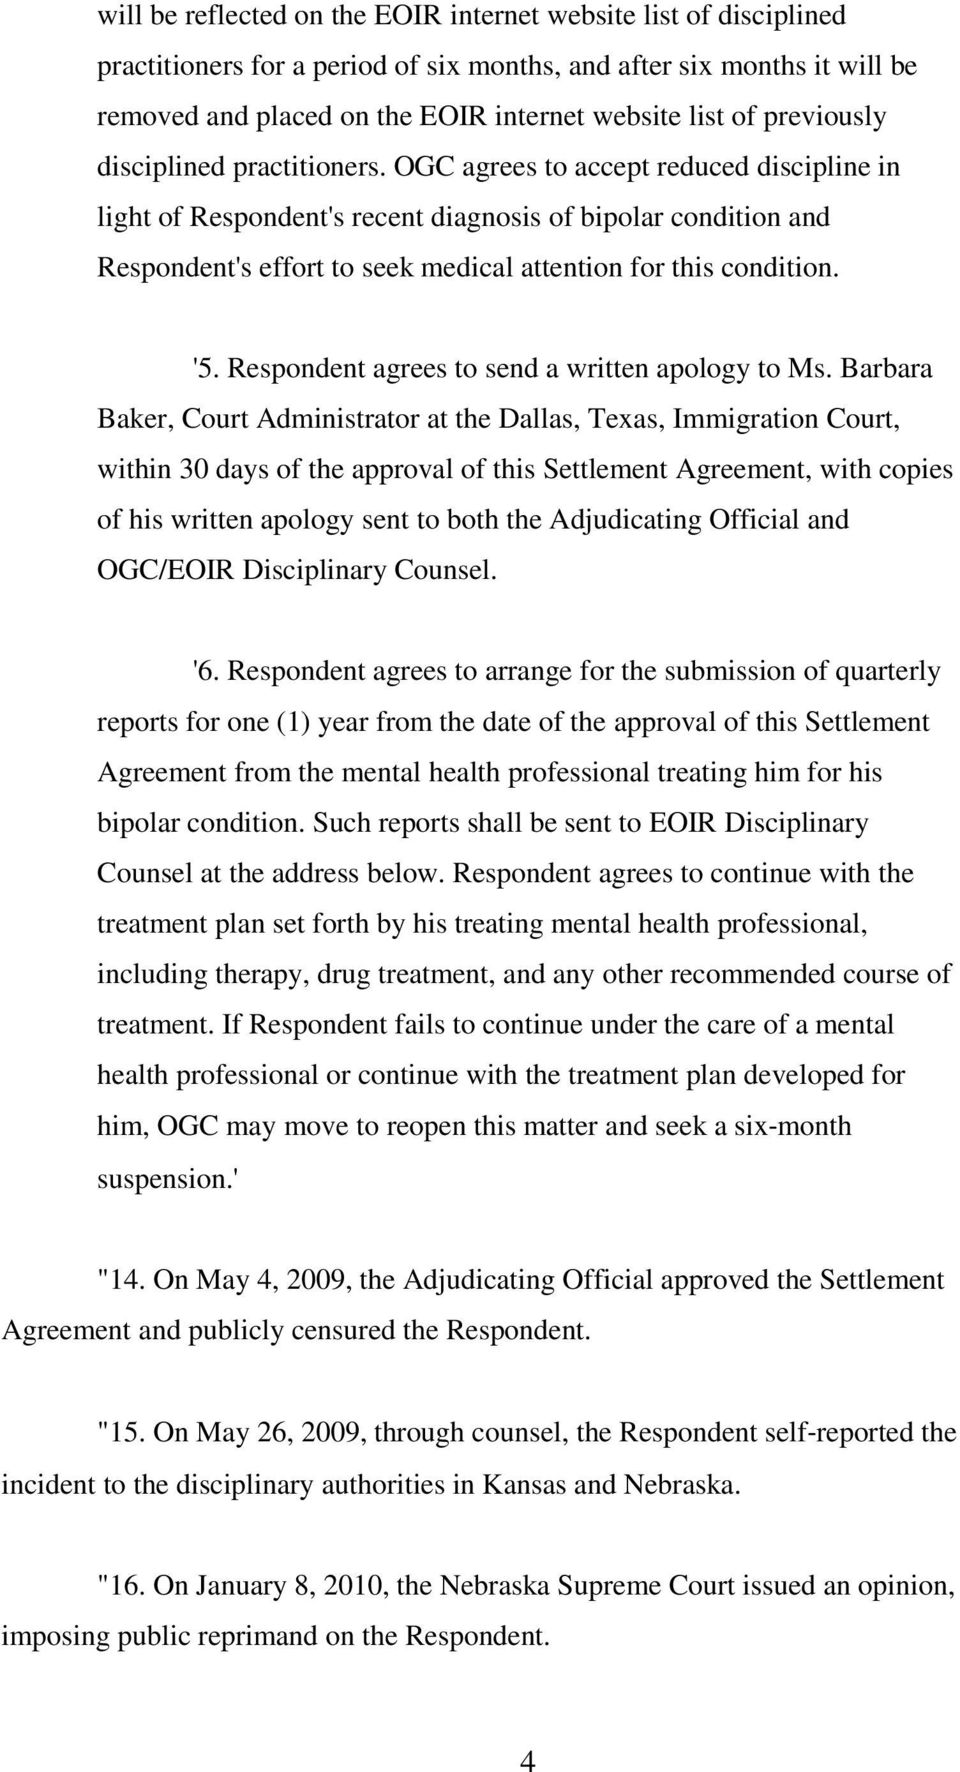 OGC agrees to accept reduced discipline in light of Respondent's recent diagnosis of bipolar condition and Respondent's effort to seek medical attention for this condition. '5.